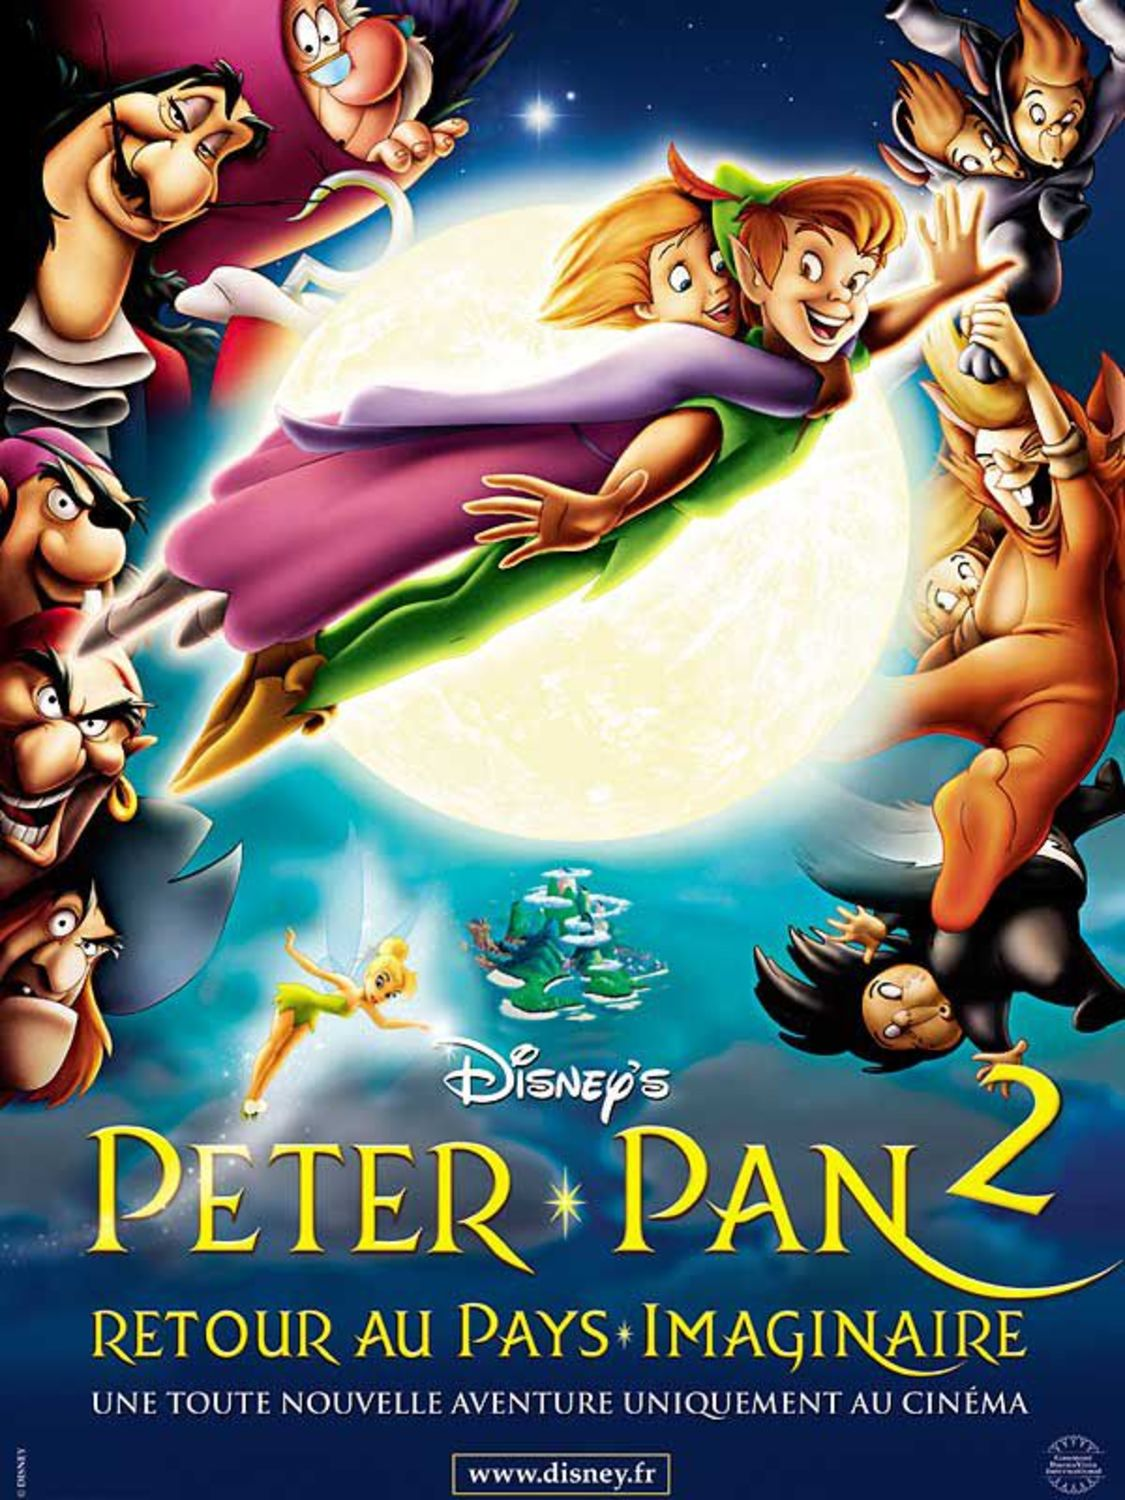 affiche poster peter pan 2 retour return pays imaginaire never land disney